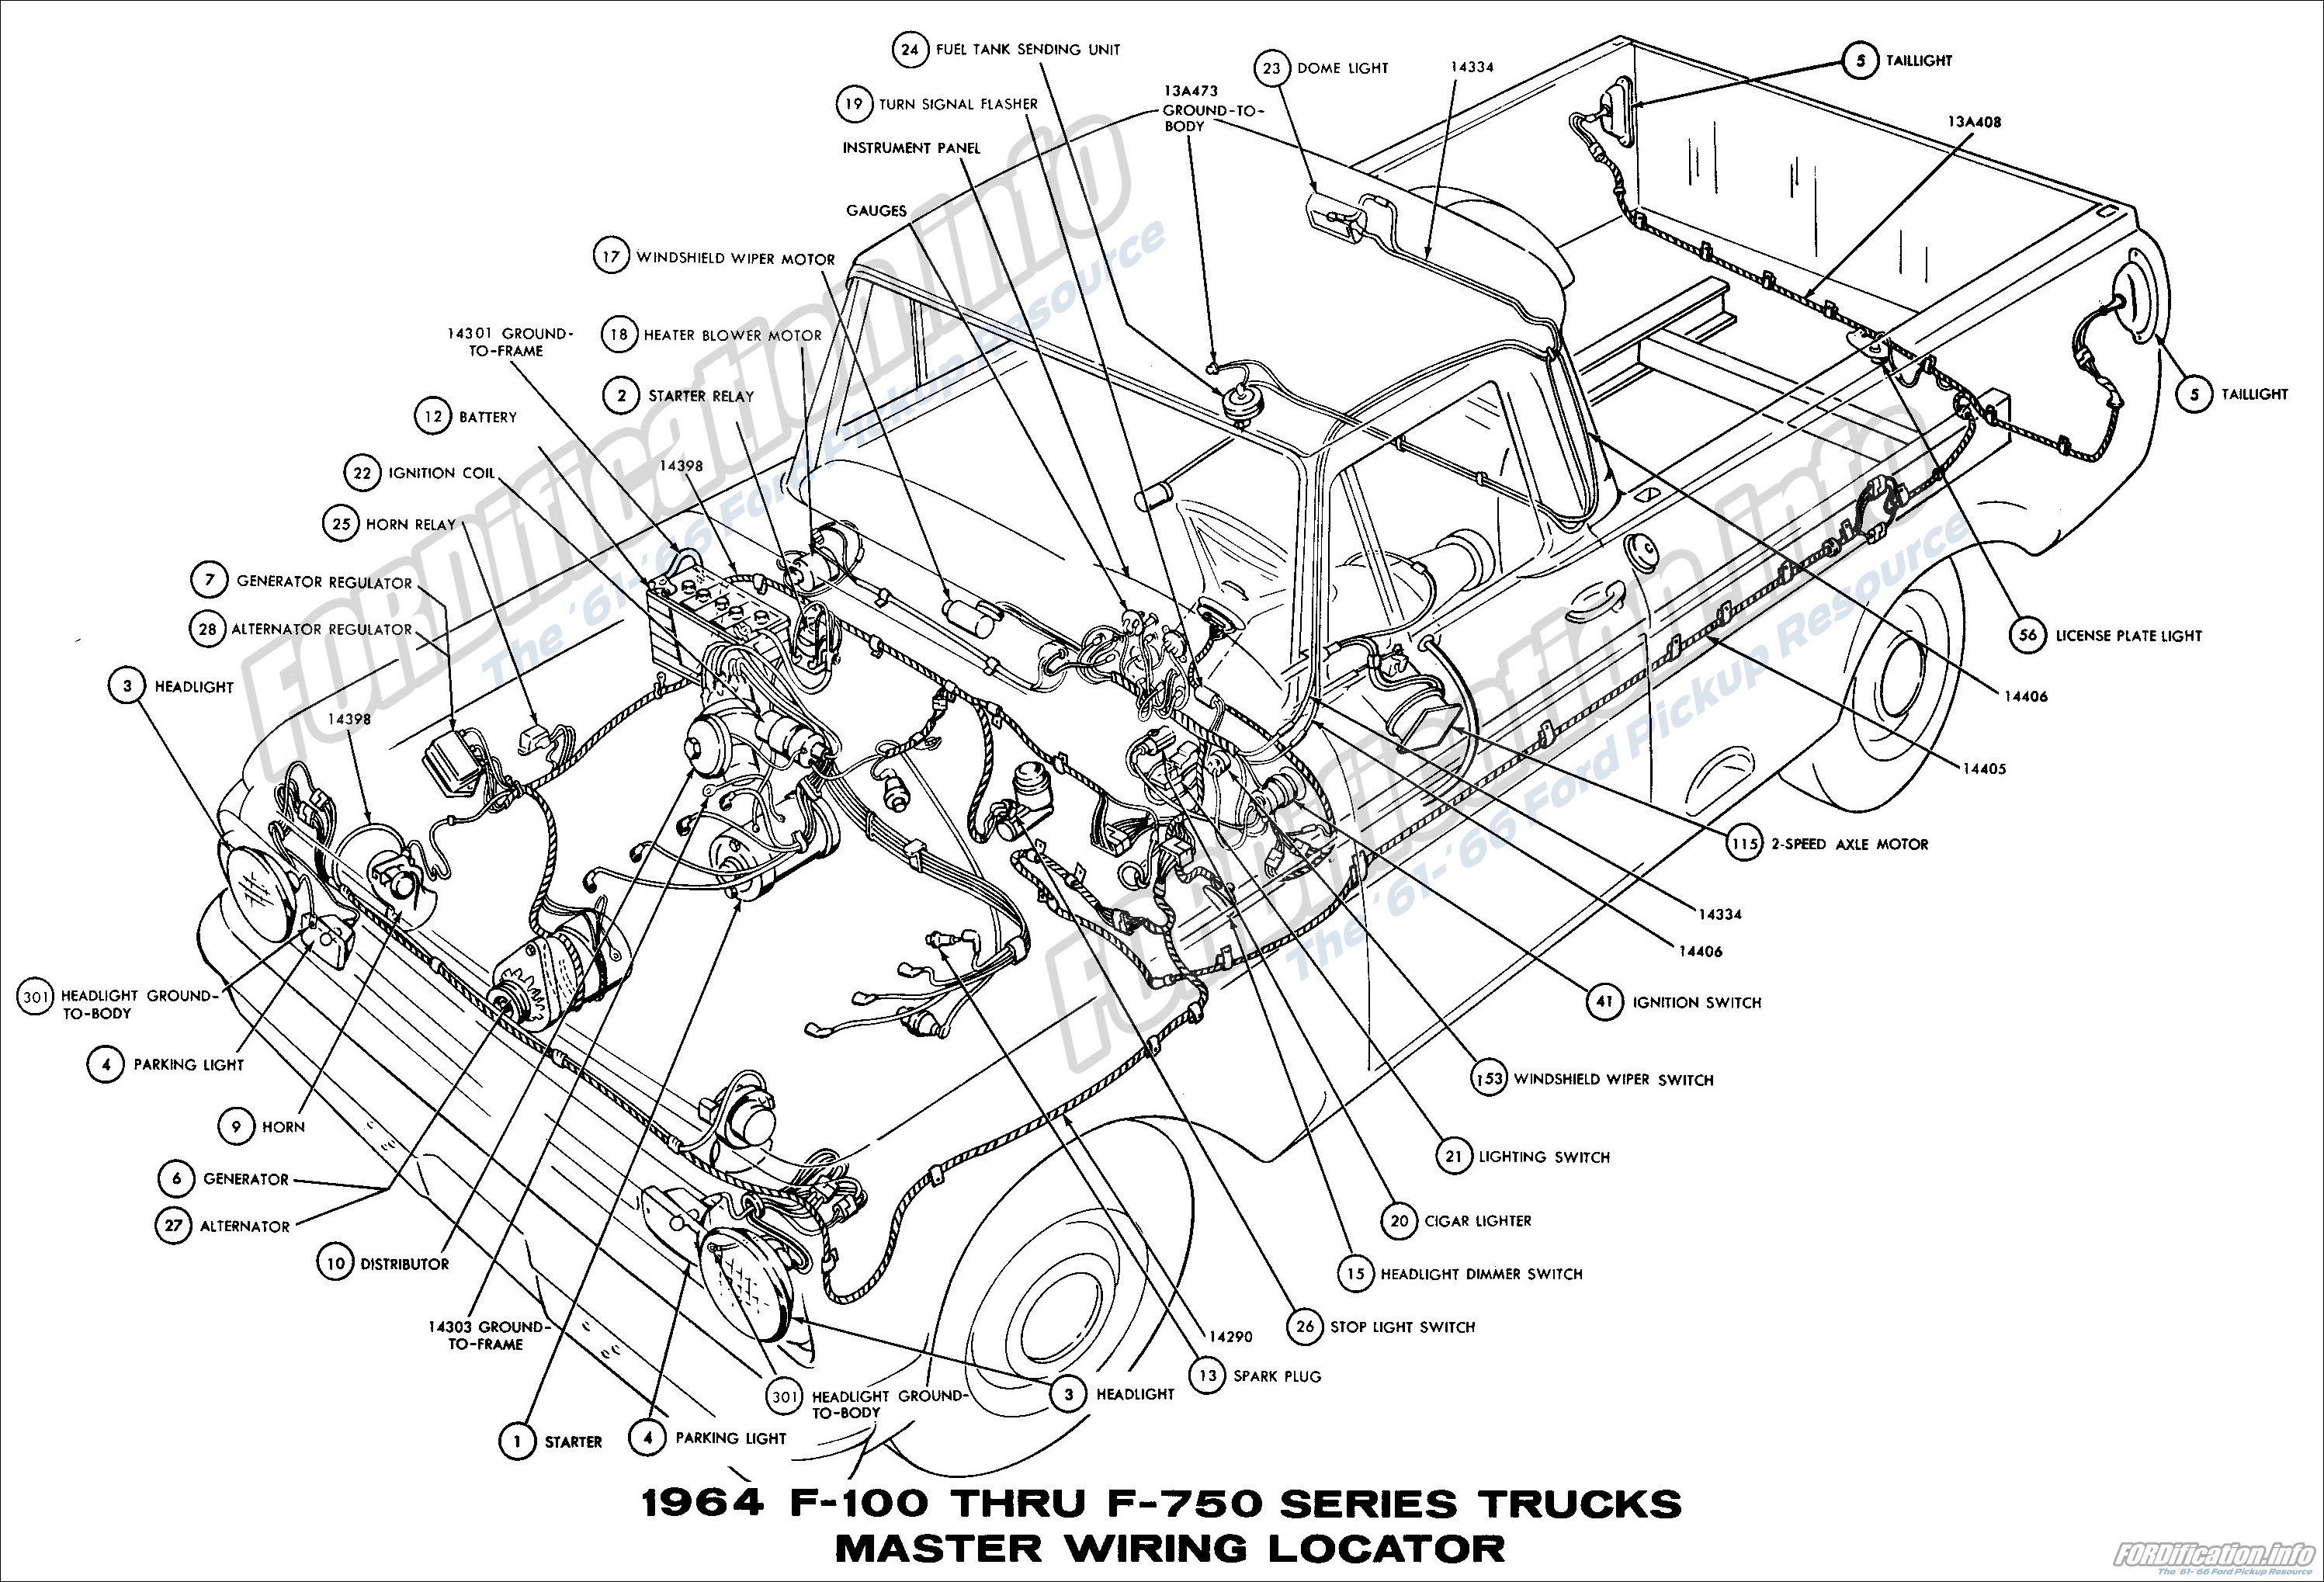 1964 ford truck wiring diagrams fordification info the '61 '66 1973 ford truck wiring diagram 1964 f100 thru f750 series trucks master wiring locator